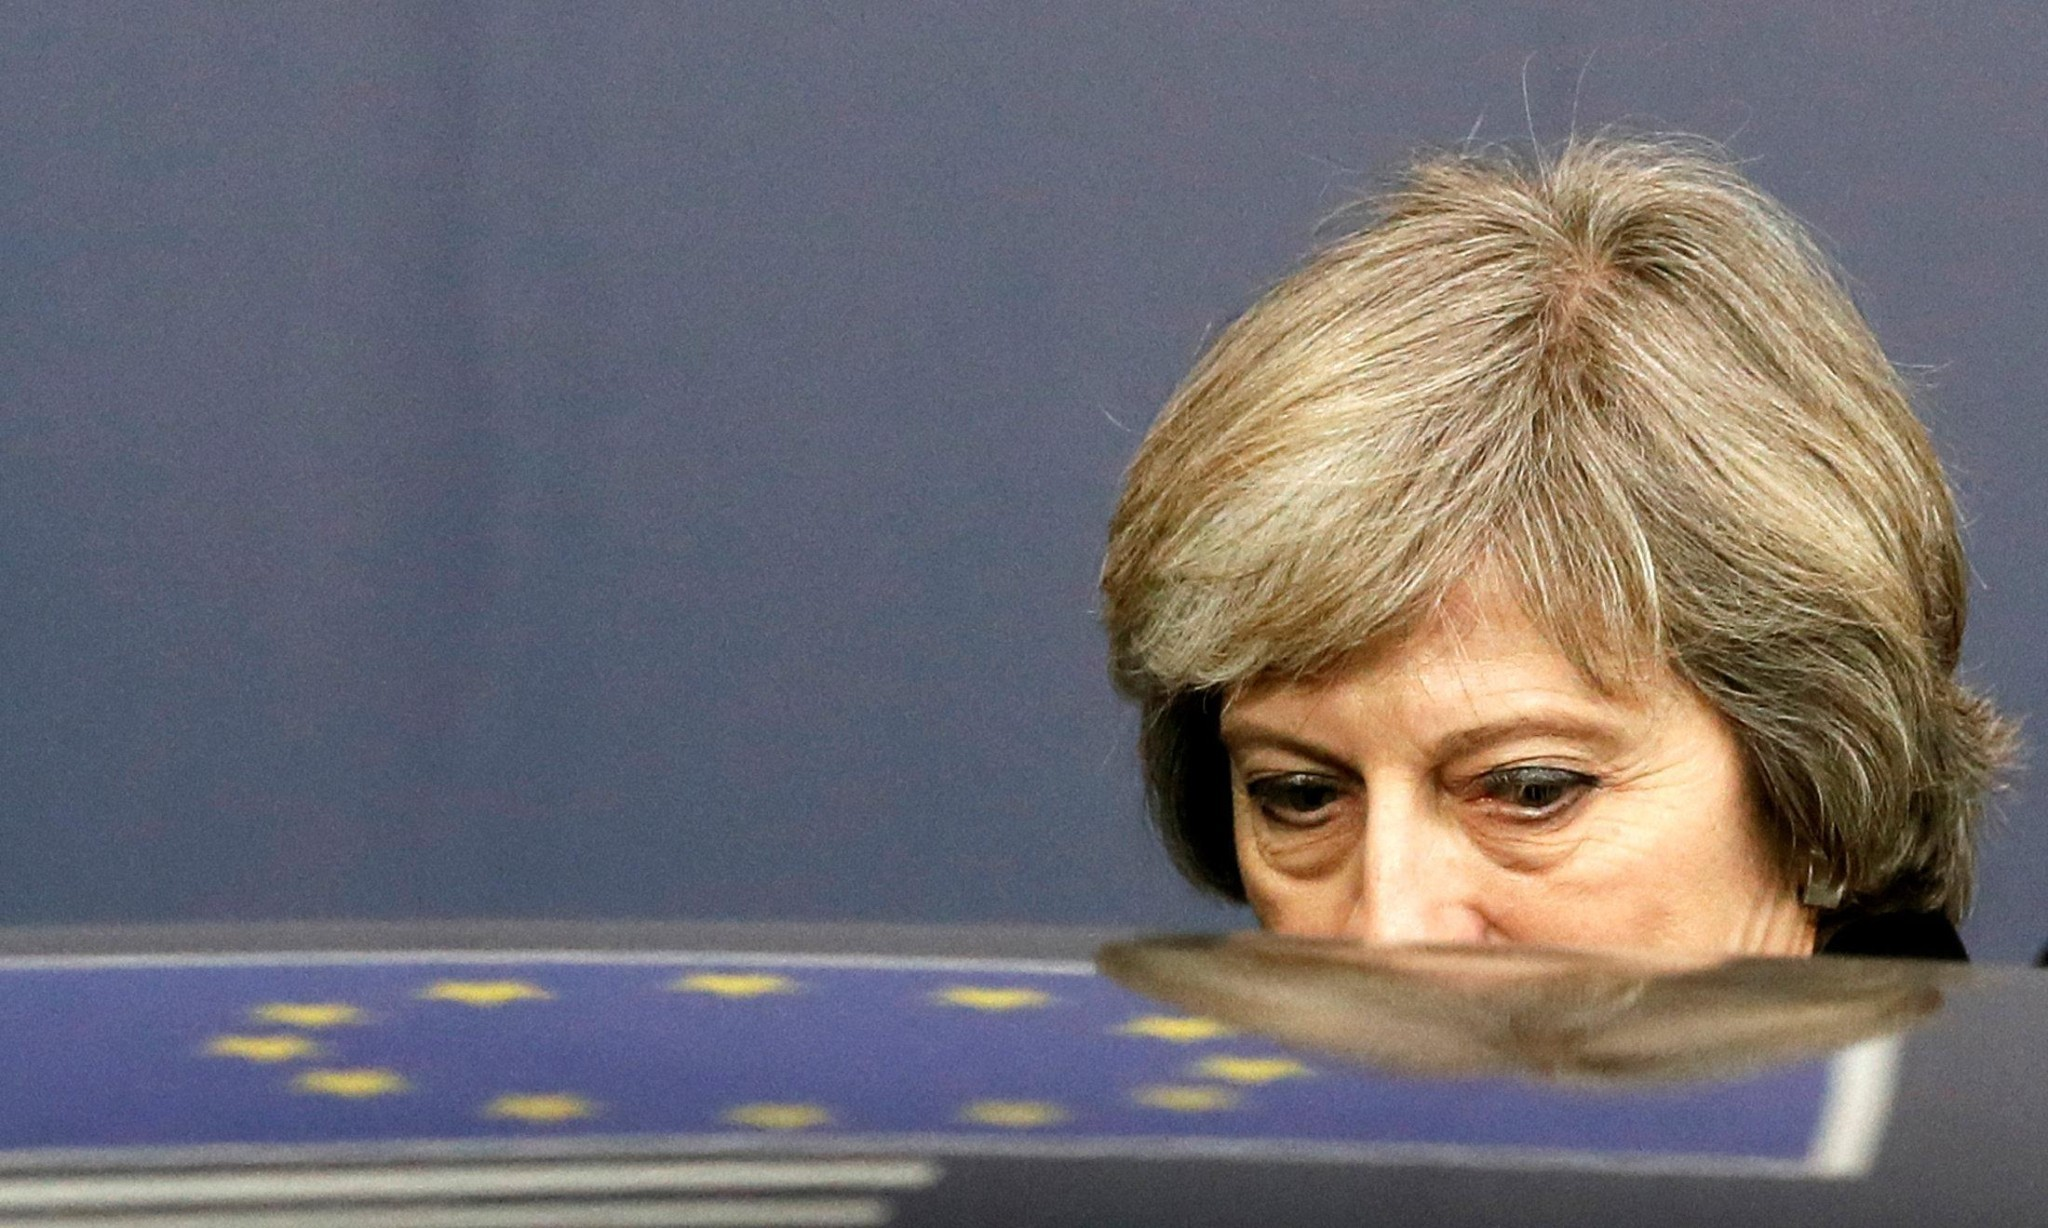 Brexit: five possible scenarios for UK after shock election result